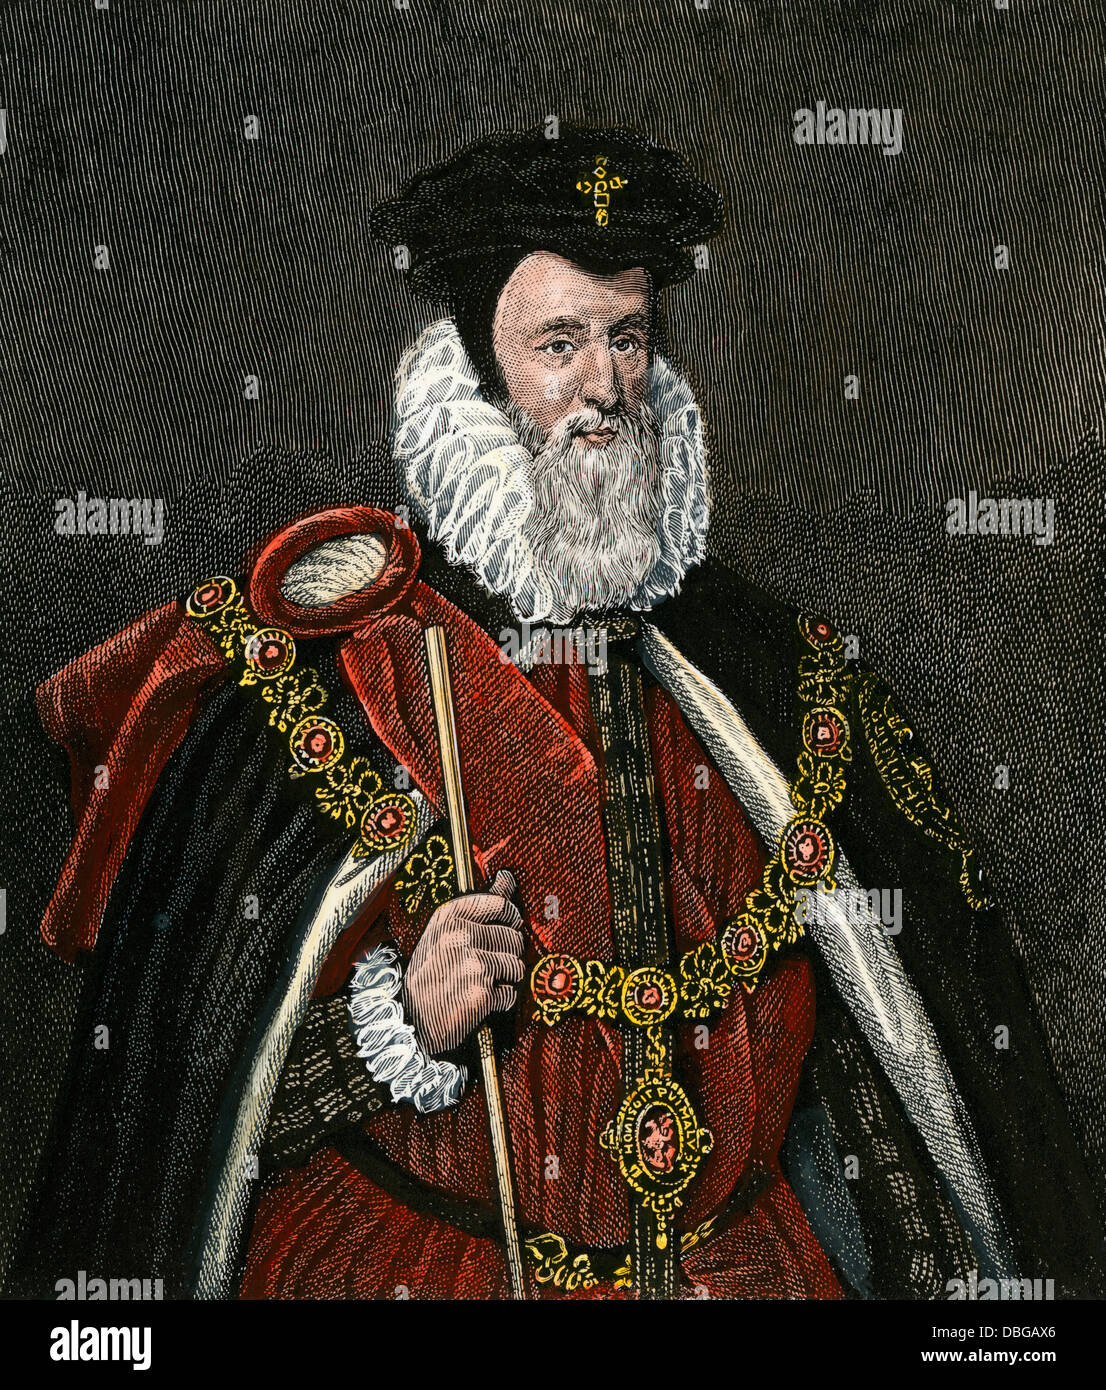 William Cecil, Secretary of State under Elizabeth I. Hand-colored engraving - Stock Image